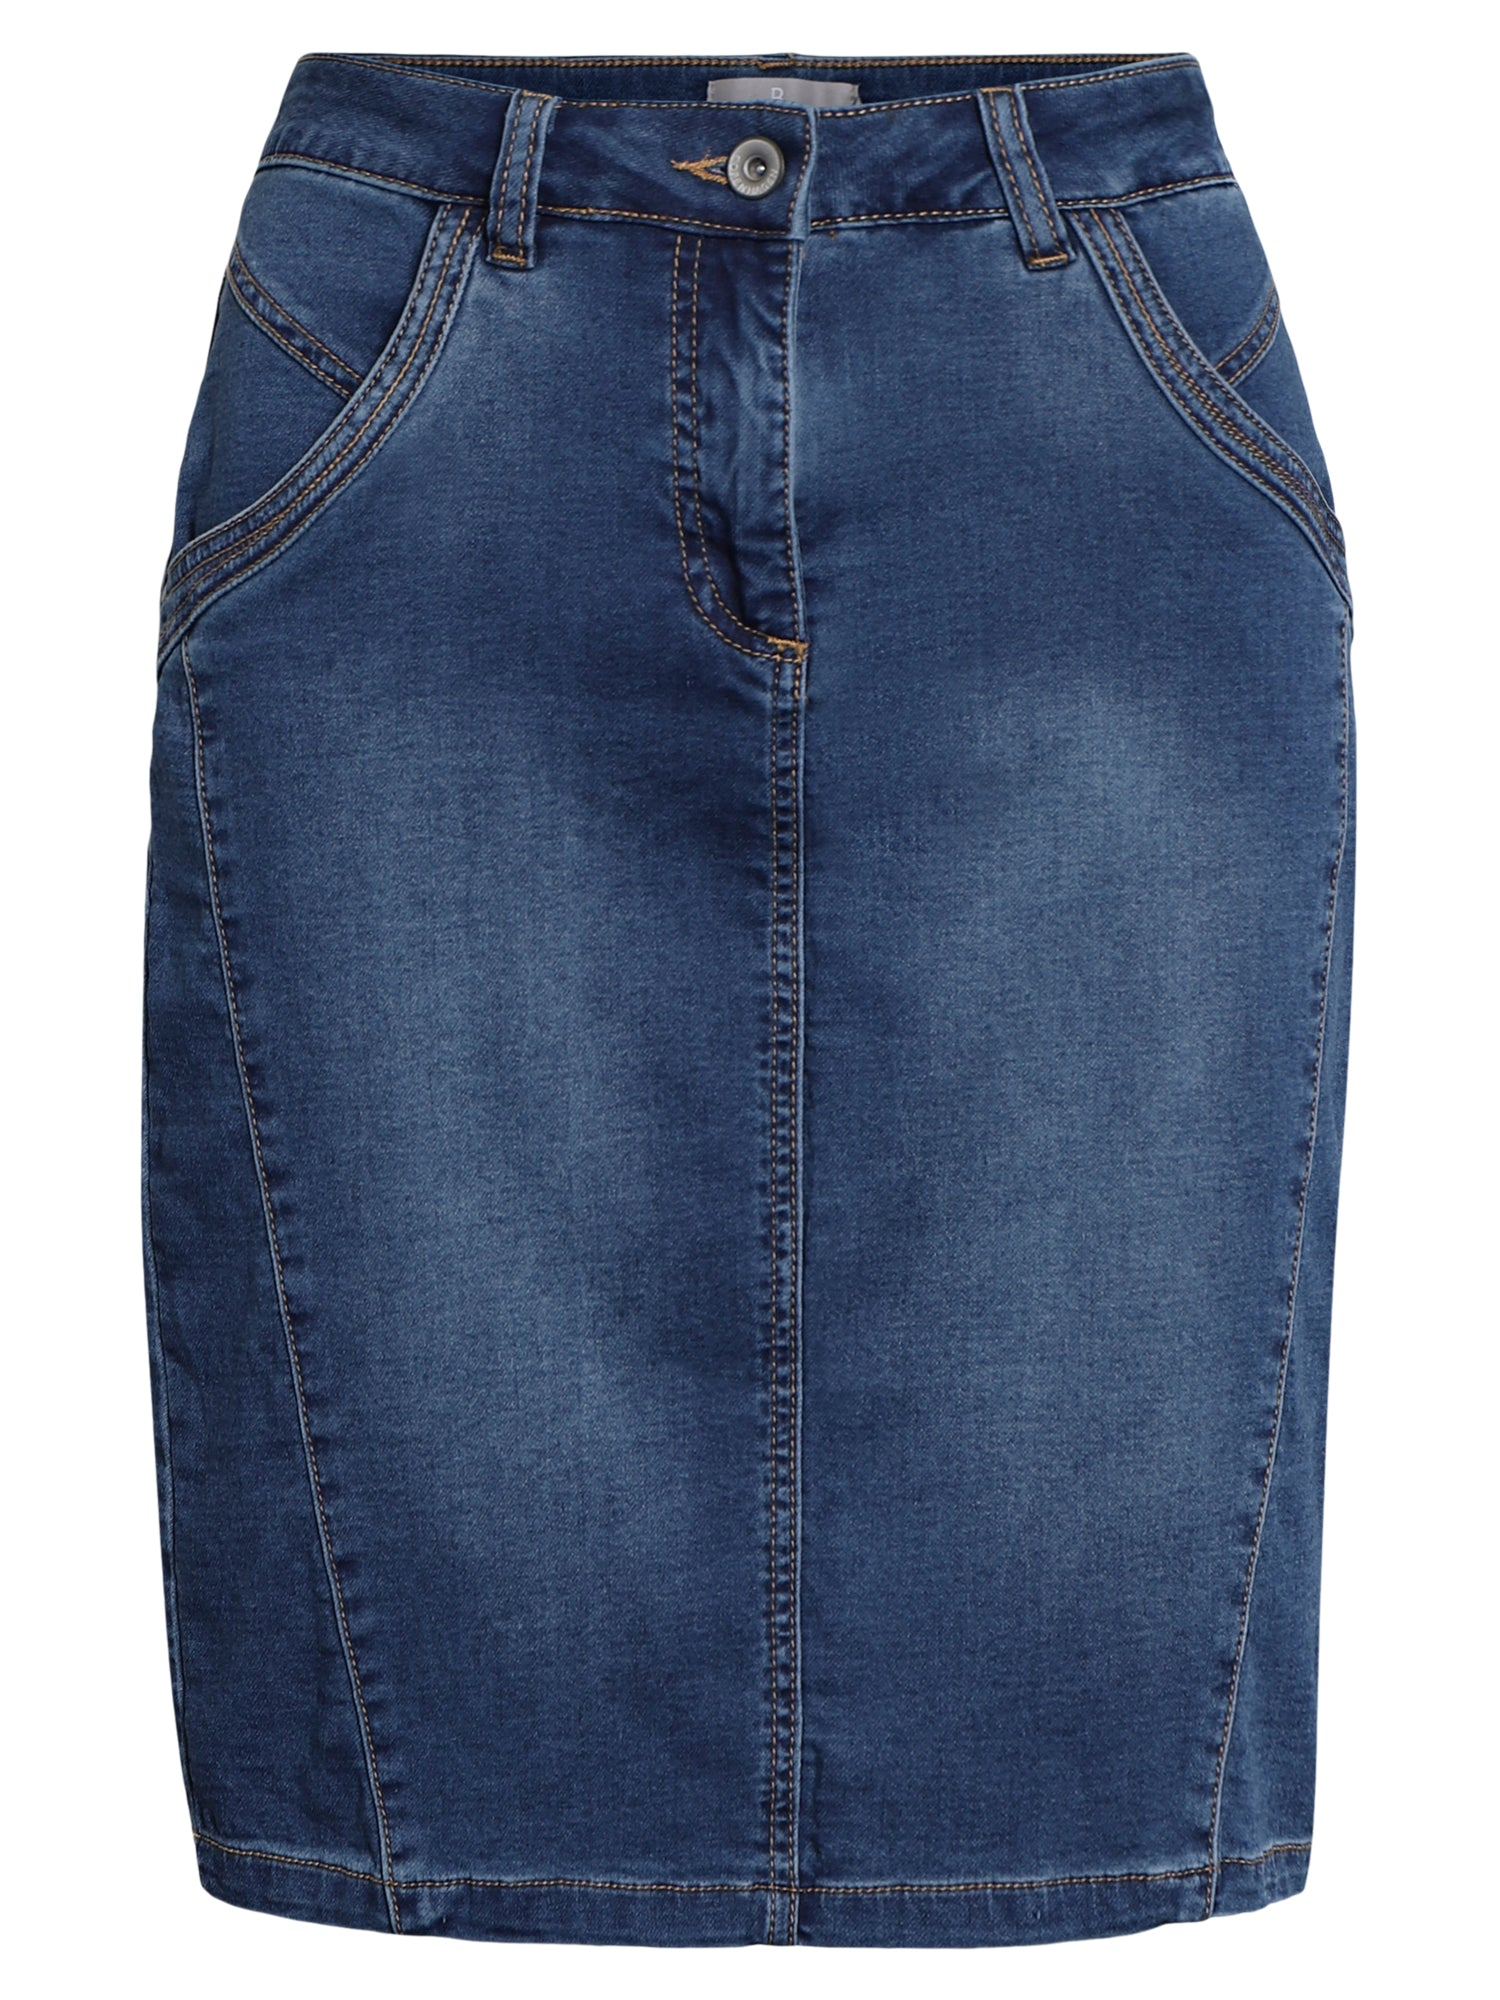 Image of   Denim nederdel - Washed denim